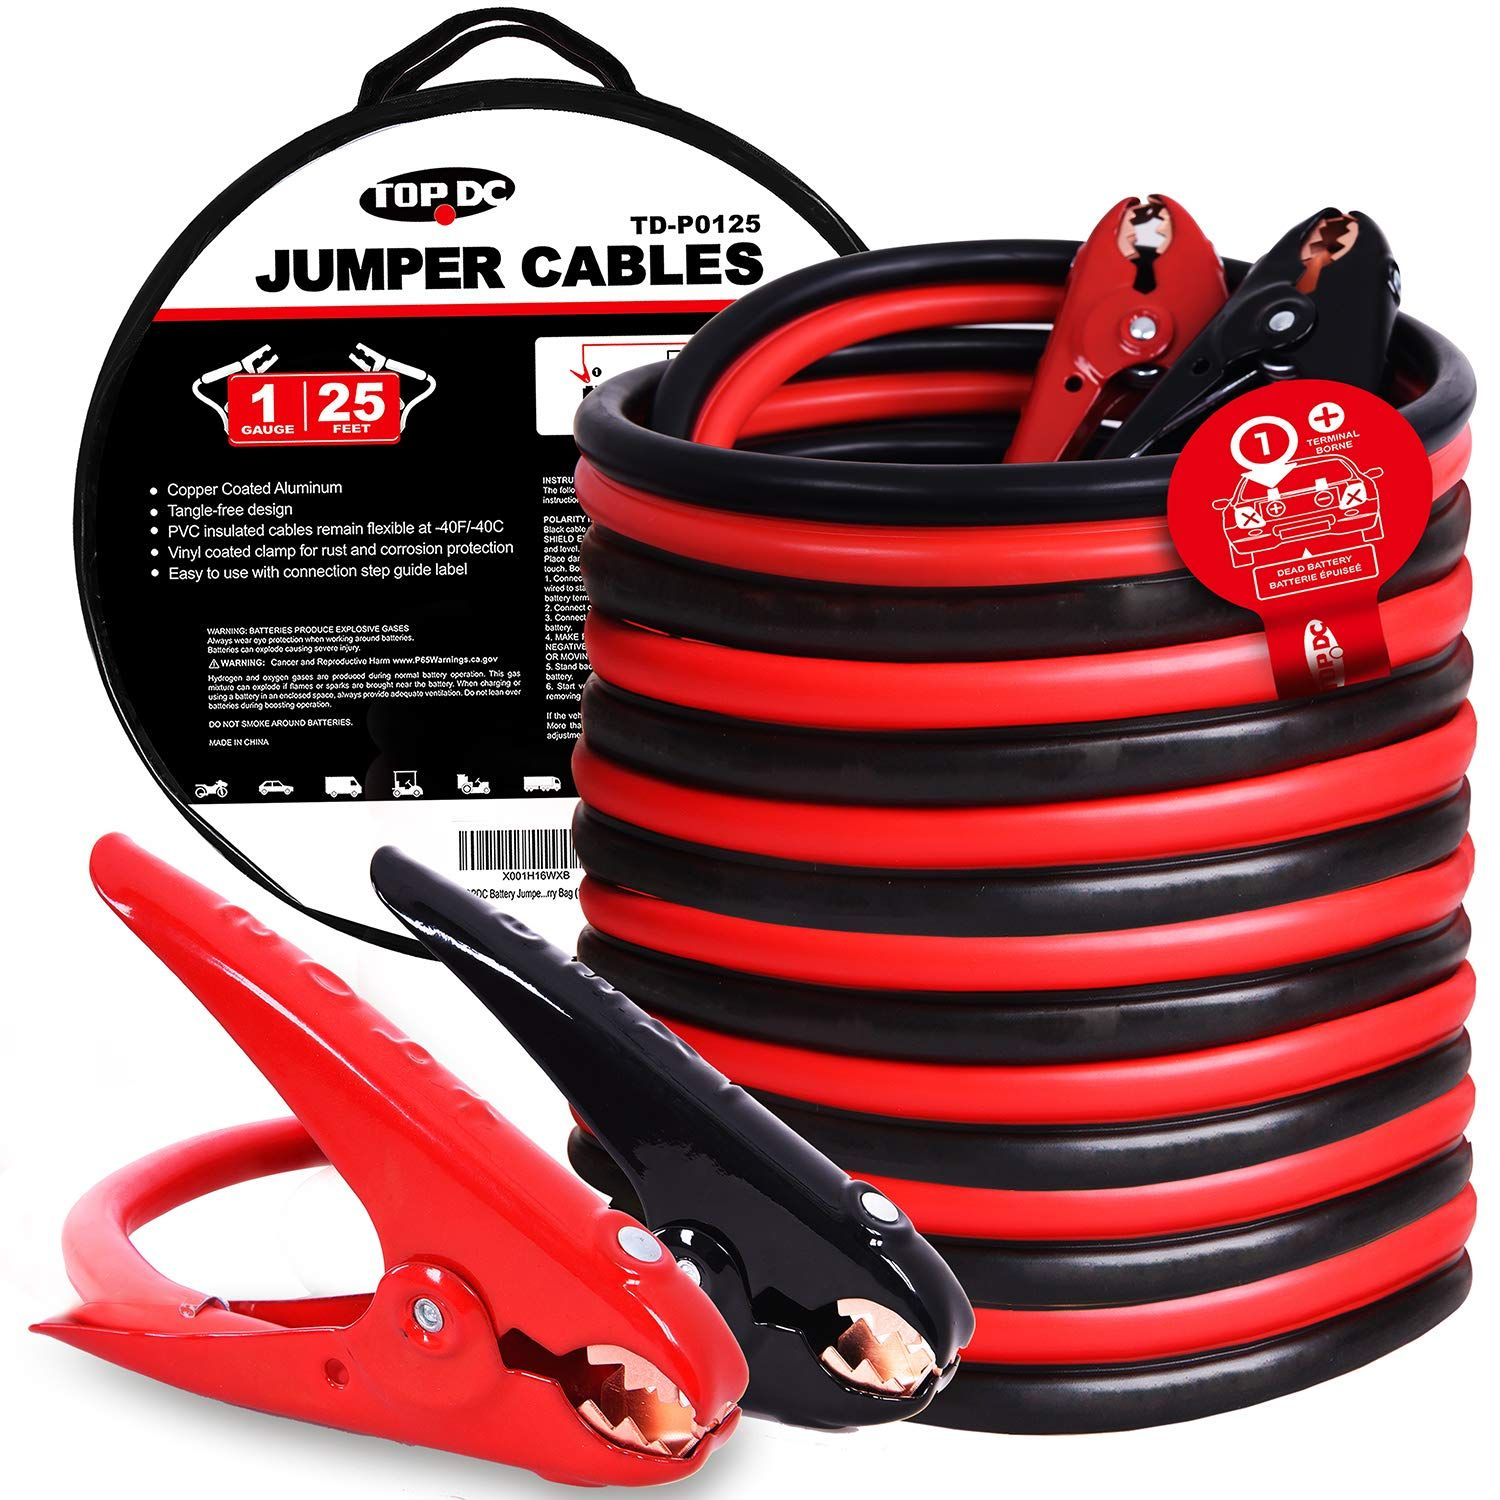 Topdc Jumper Cables 1 Gauge 25 Ft 700amp Heavy Duty Booster Cables With Carry Bag 1awg X 25 You Can Find Out More Detai Heavy Duty Carry On Bag Carry On